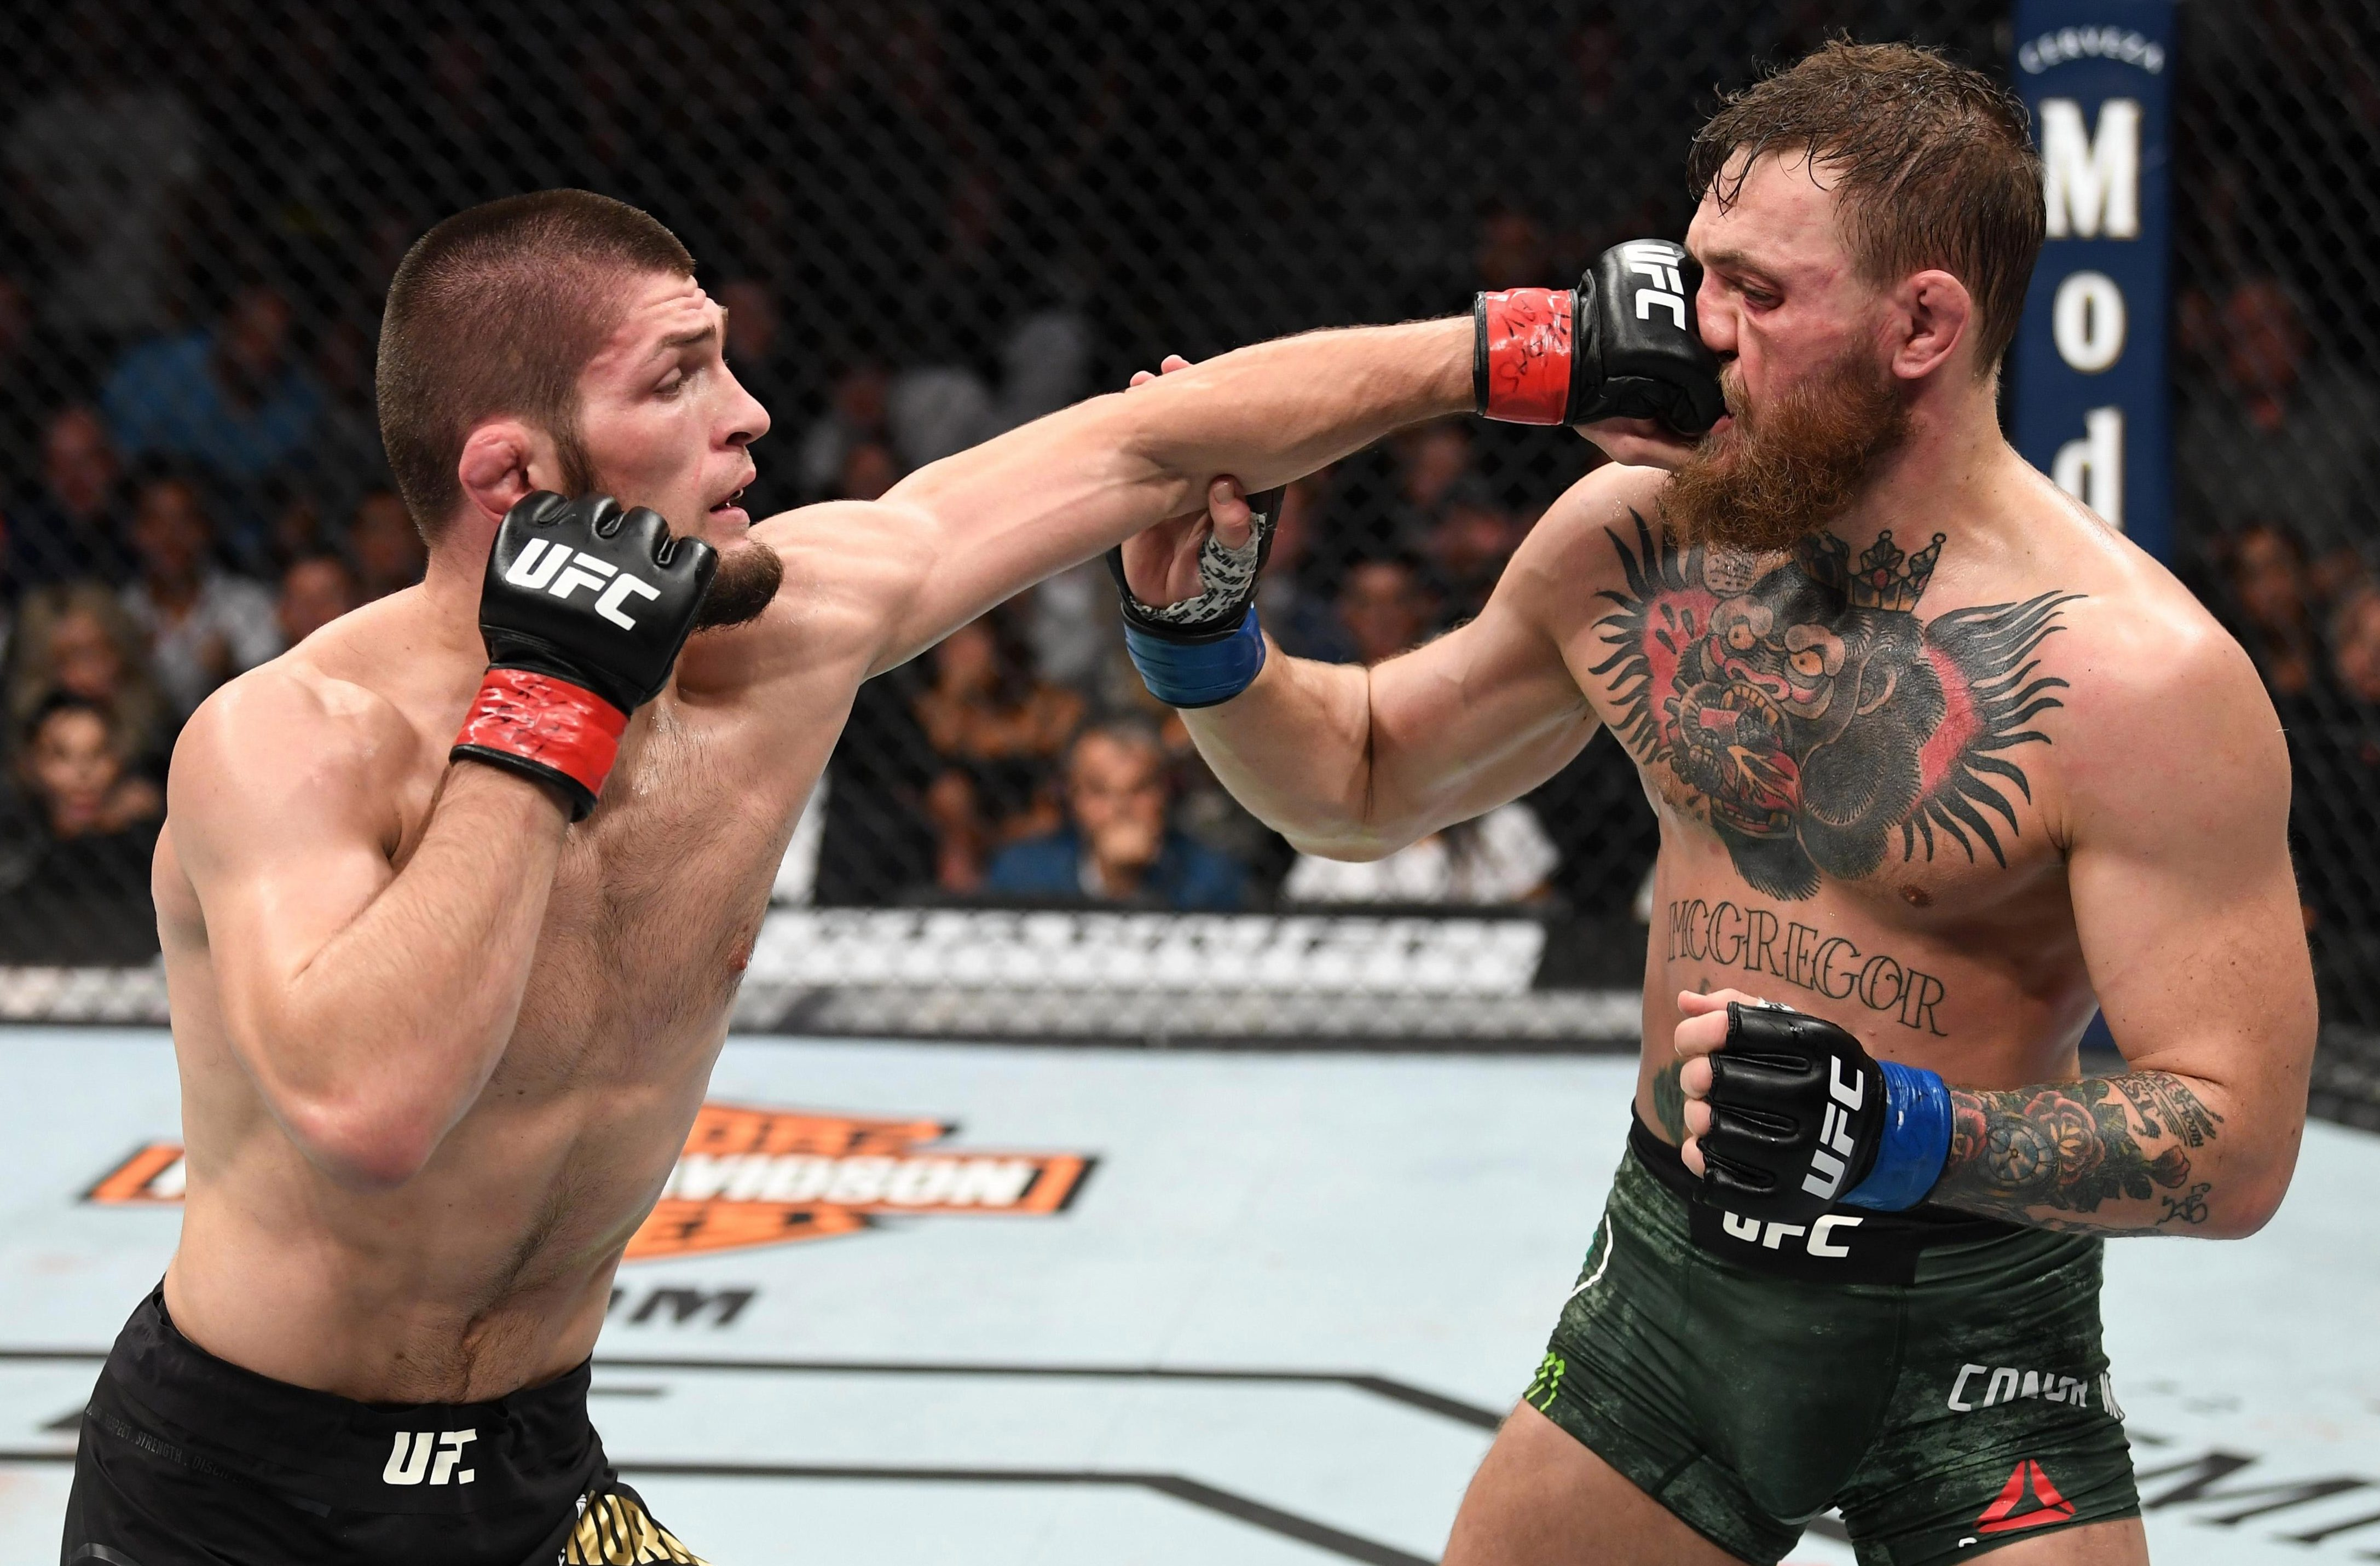 McGregor and Khabib have been banned indefinitely by the UFC following the post-fight brawl at UFC 229